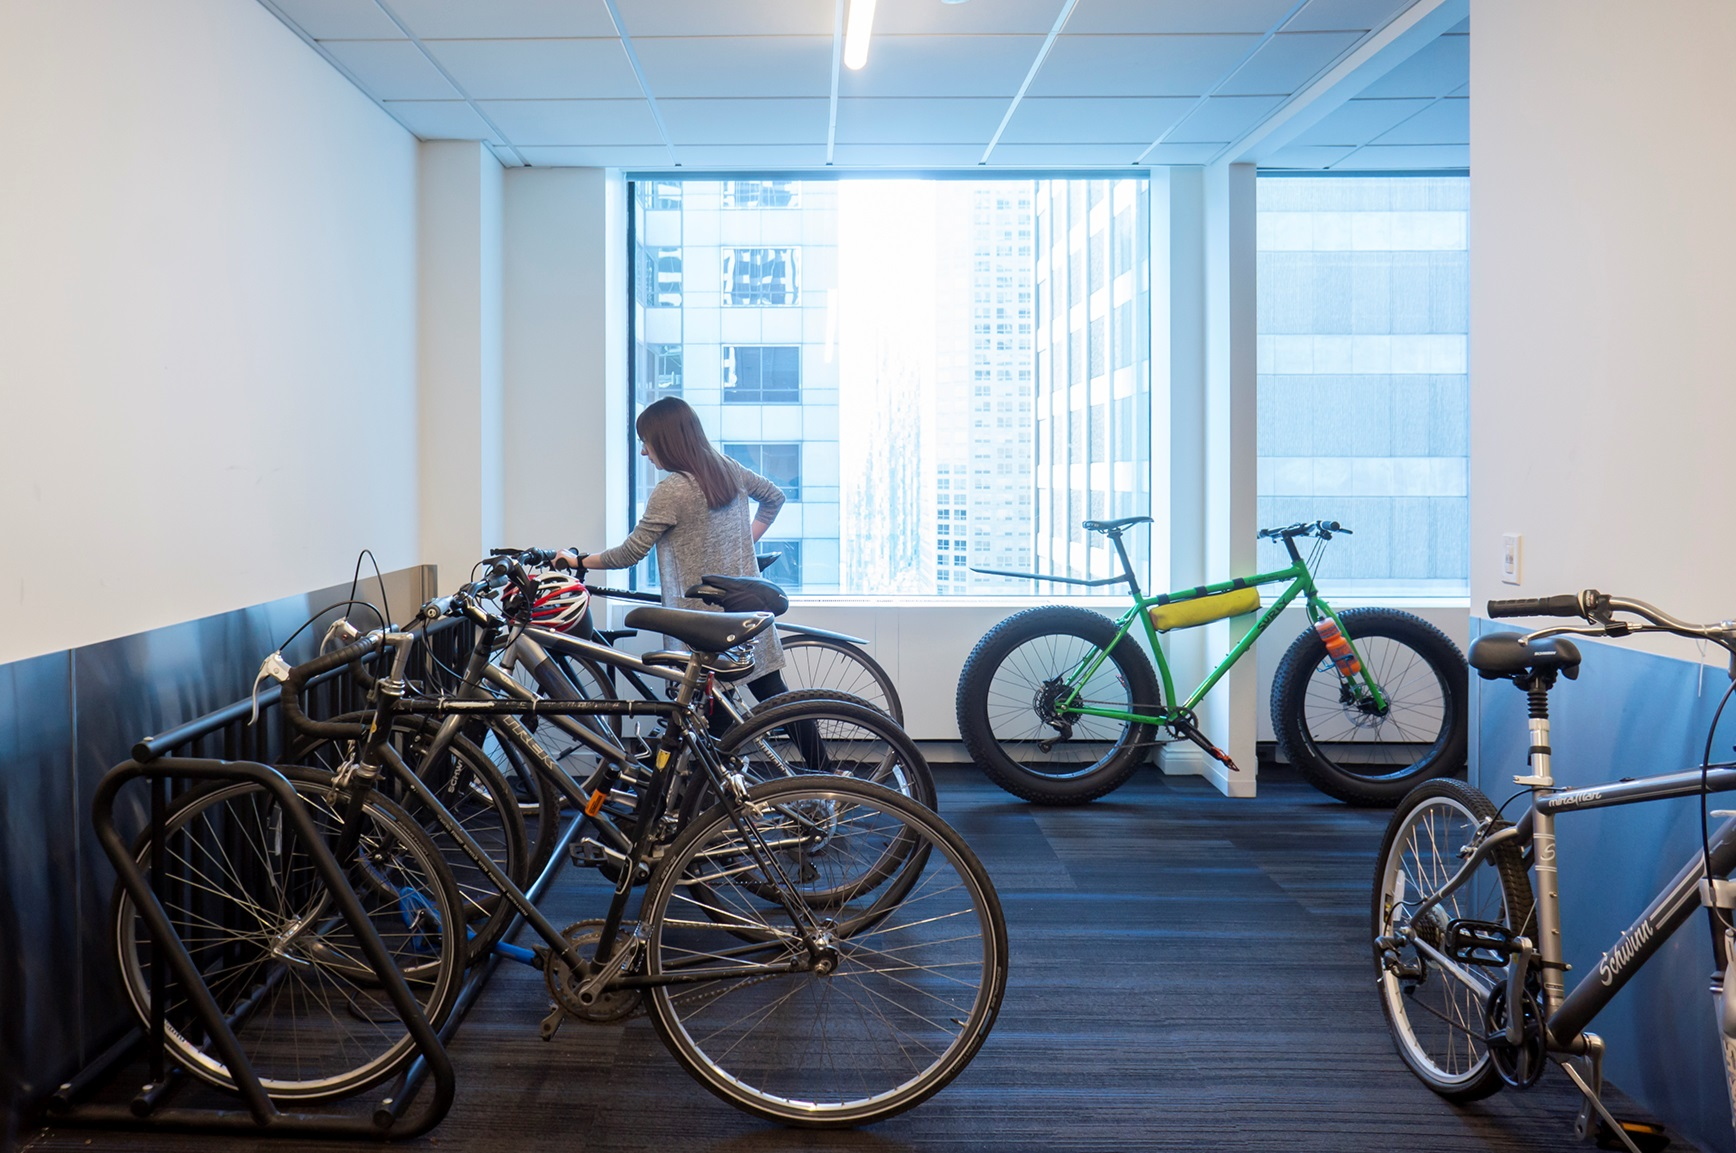 A woman stores her bike in the in-office bike storage room.